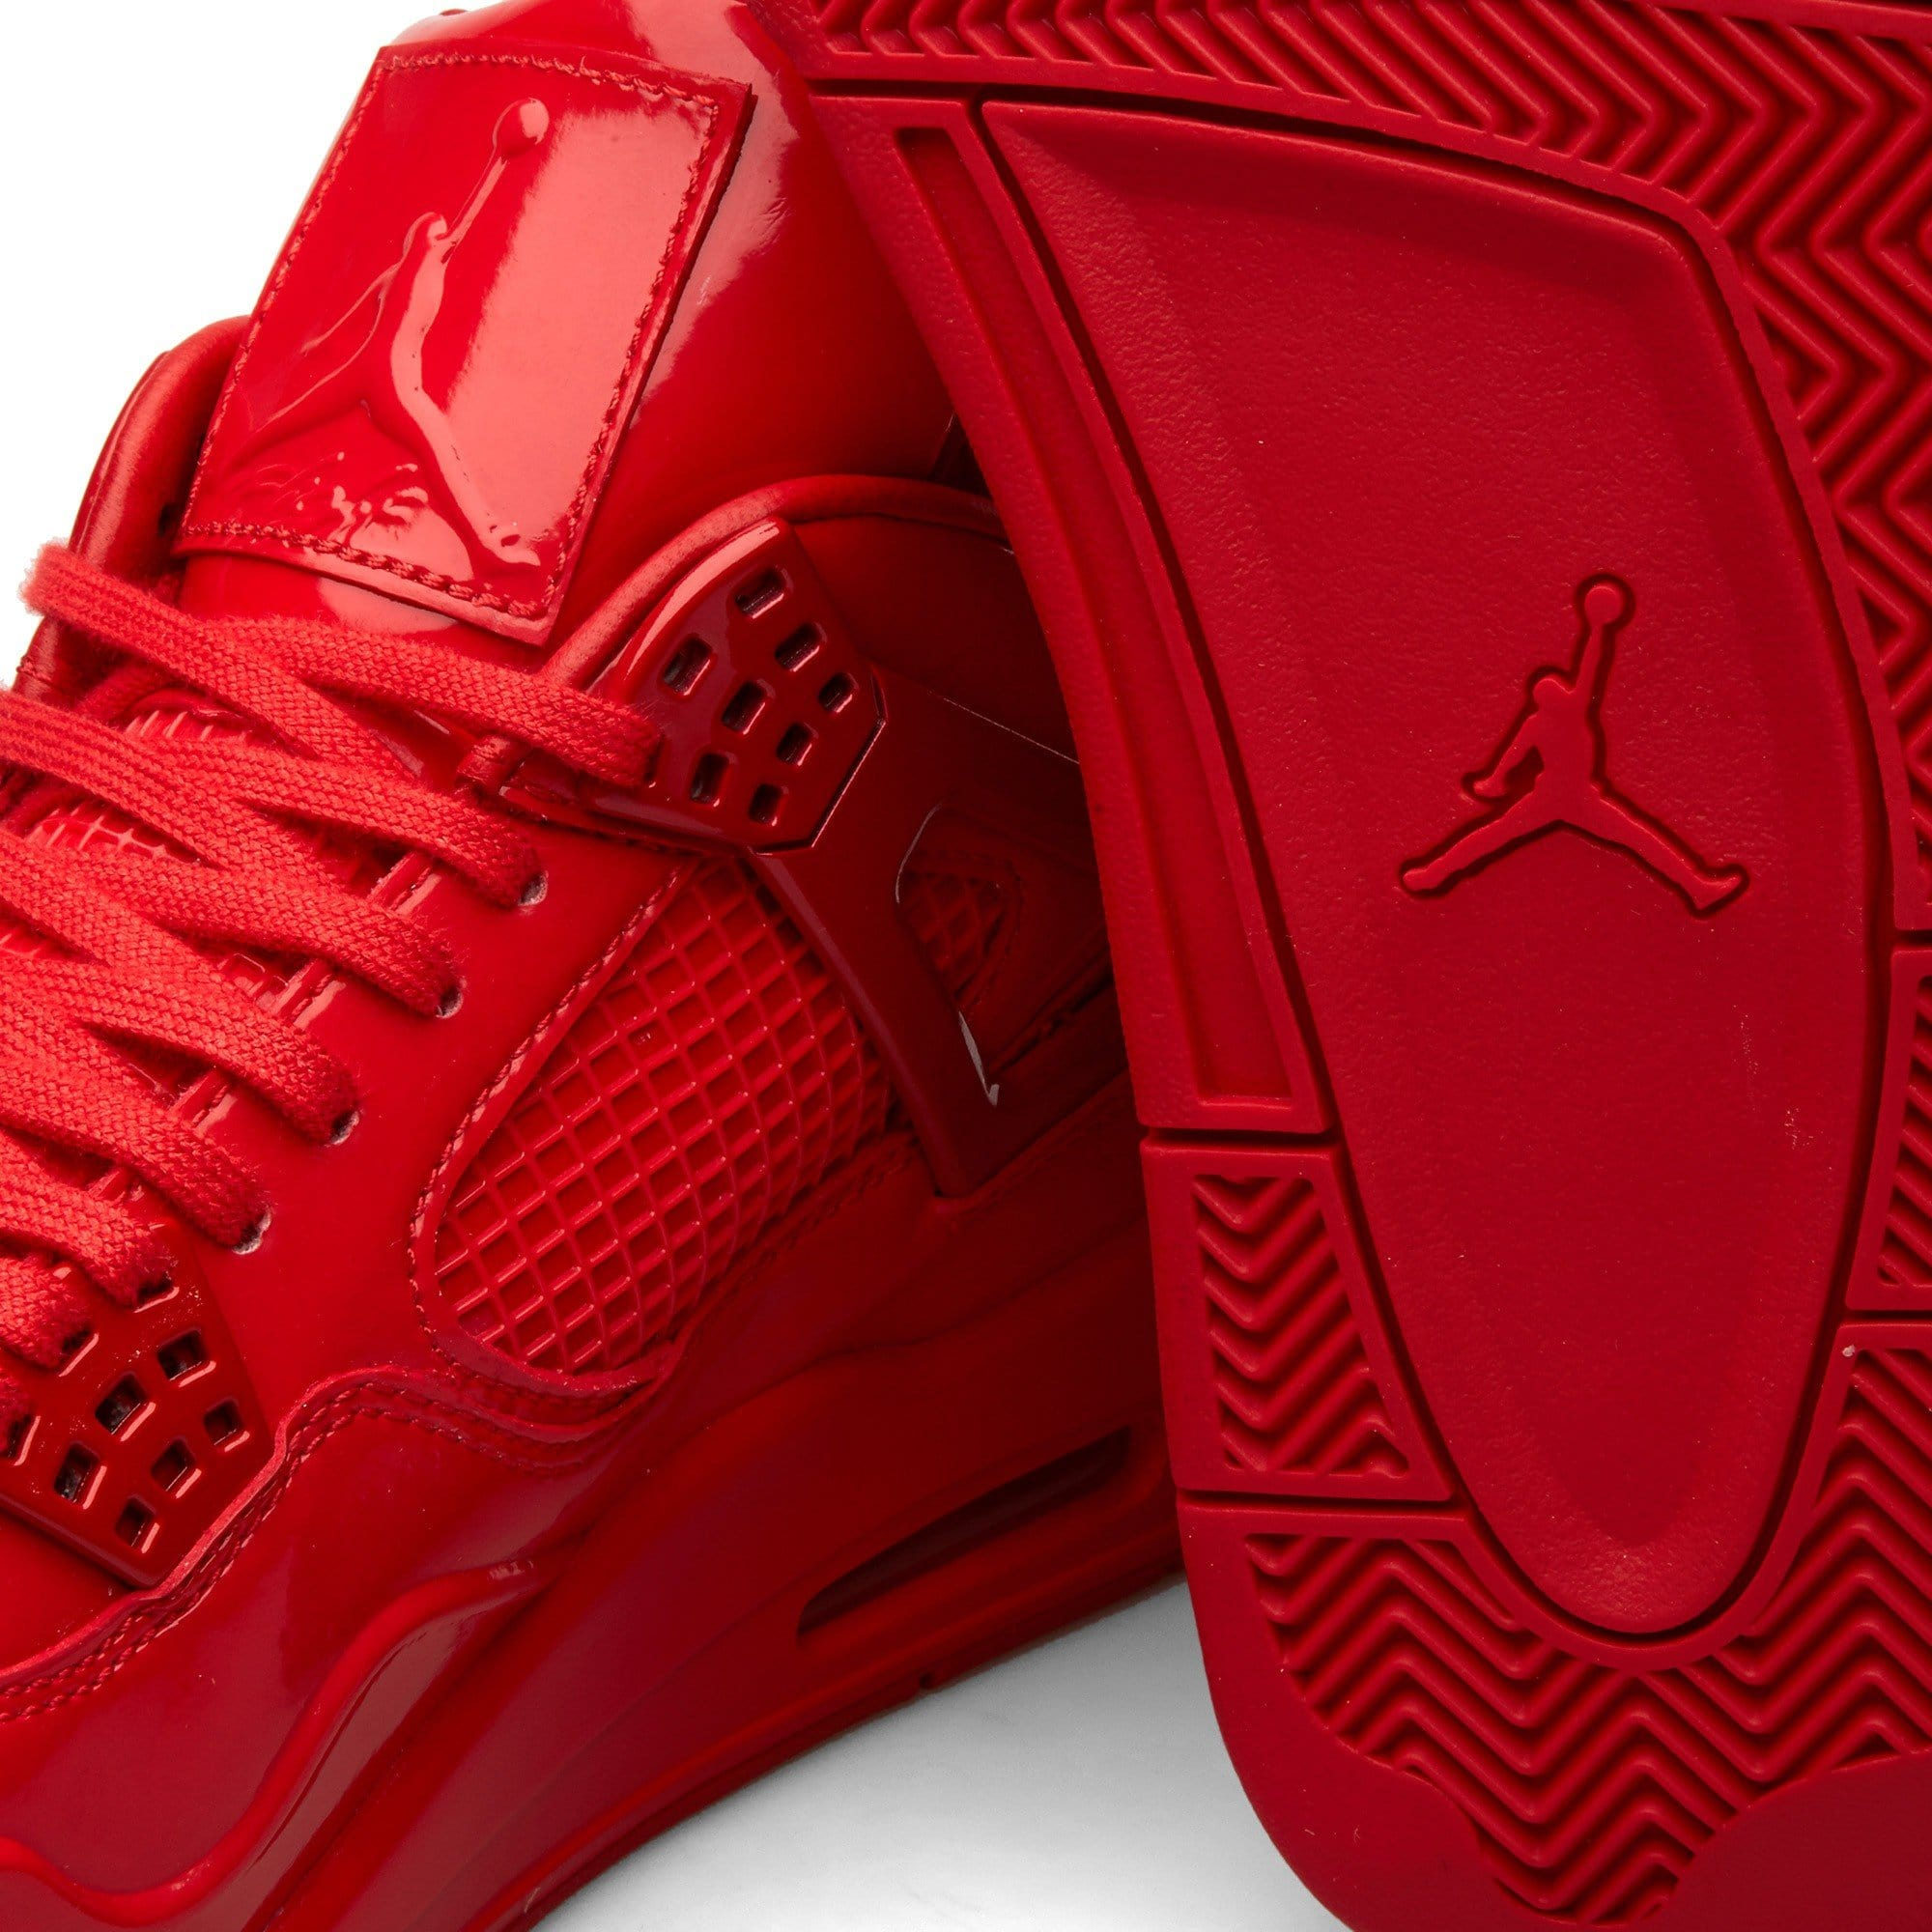 NIKE AIR JORDAN 11 LAB4 University Red - Kick Game